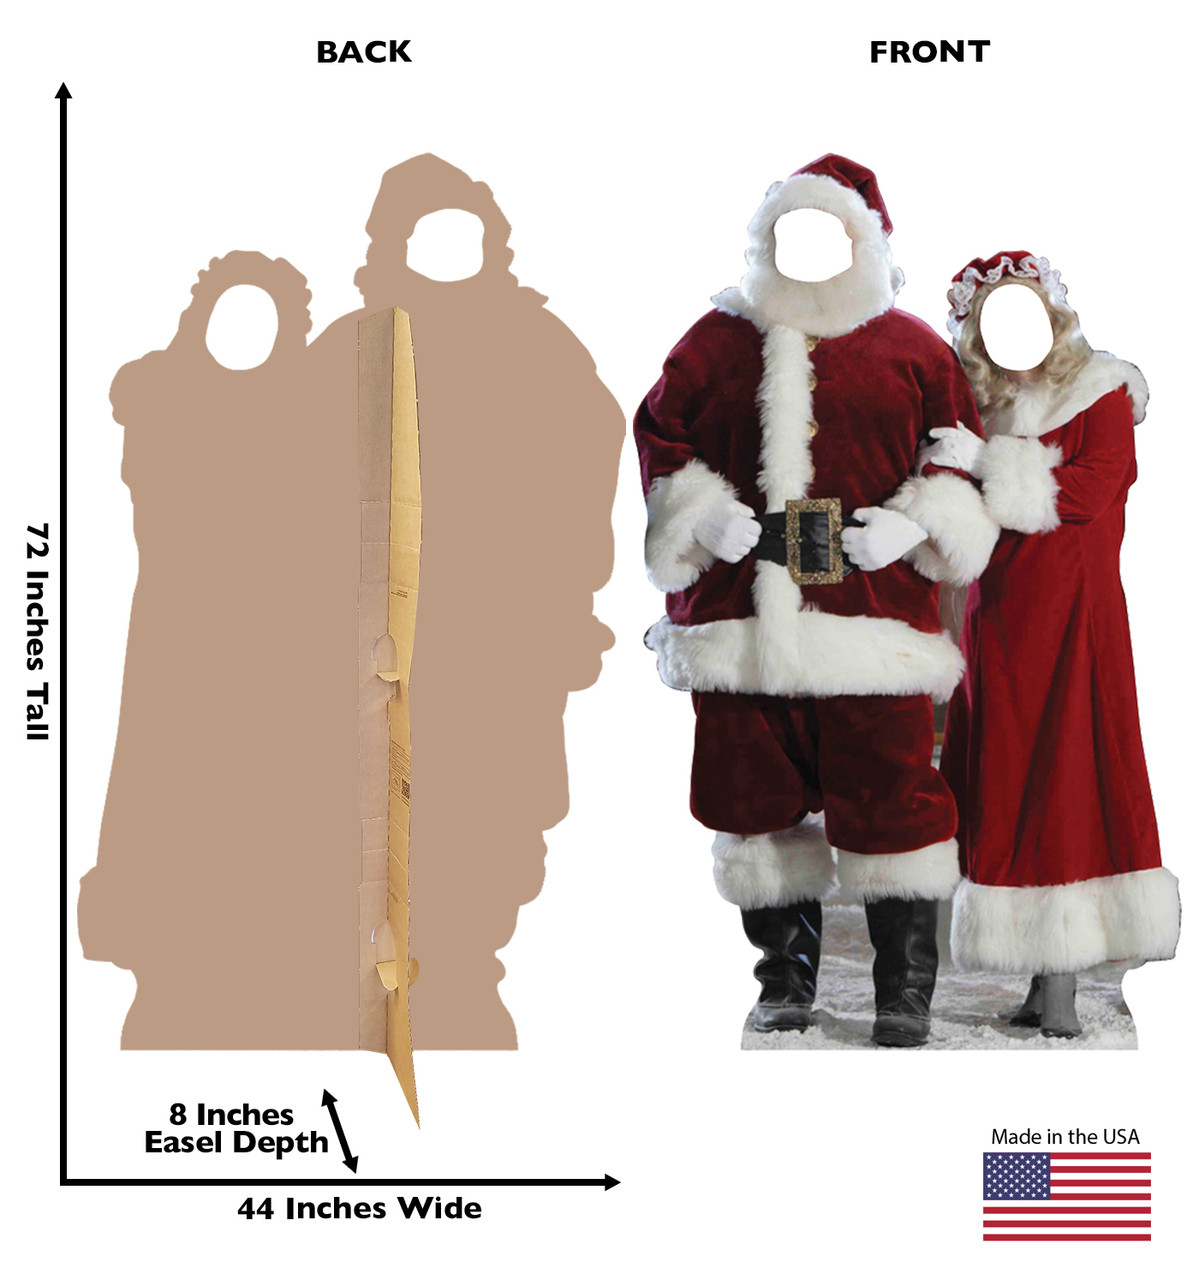 Santa and Mrs. Claus Cardboard Cutout Stand in front and back